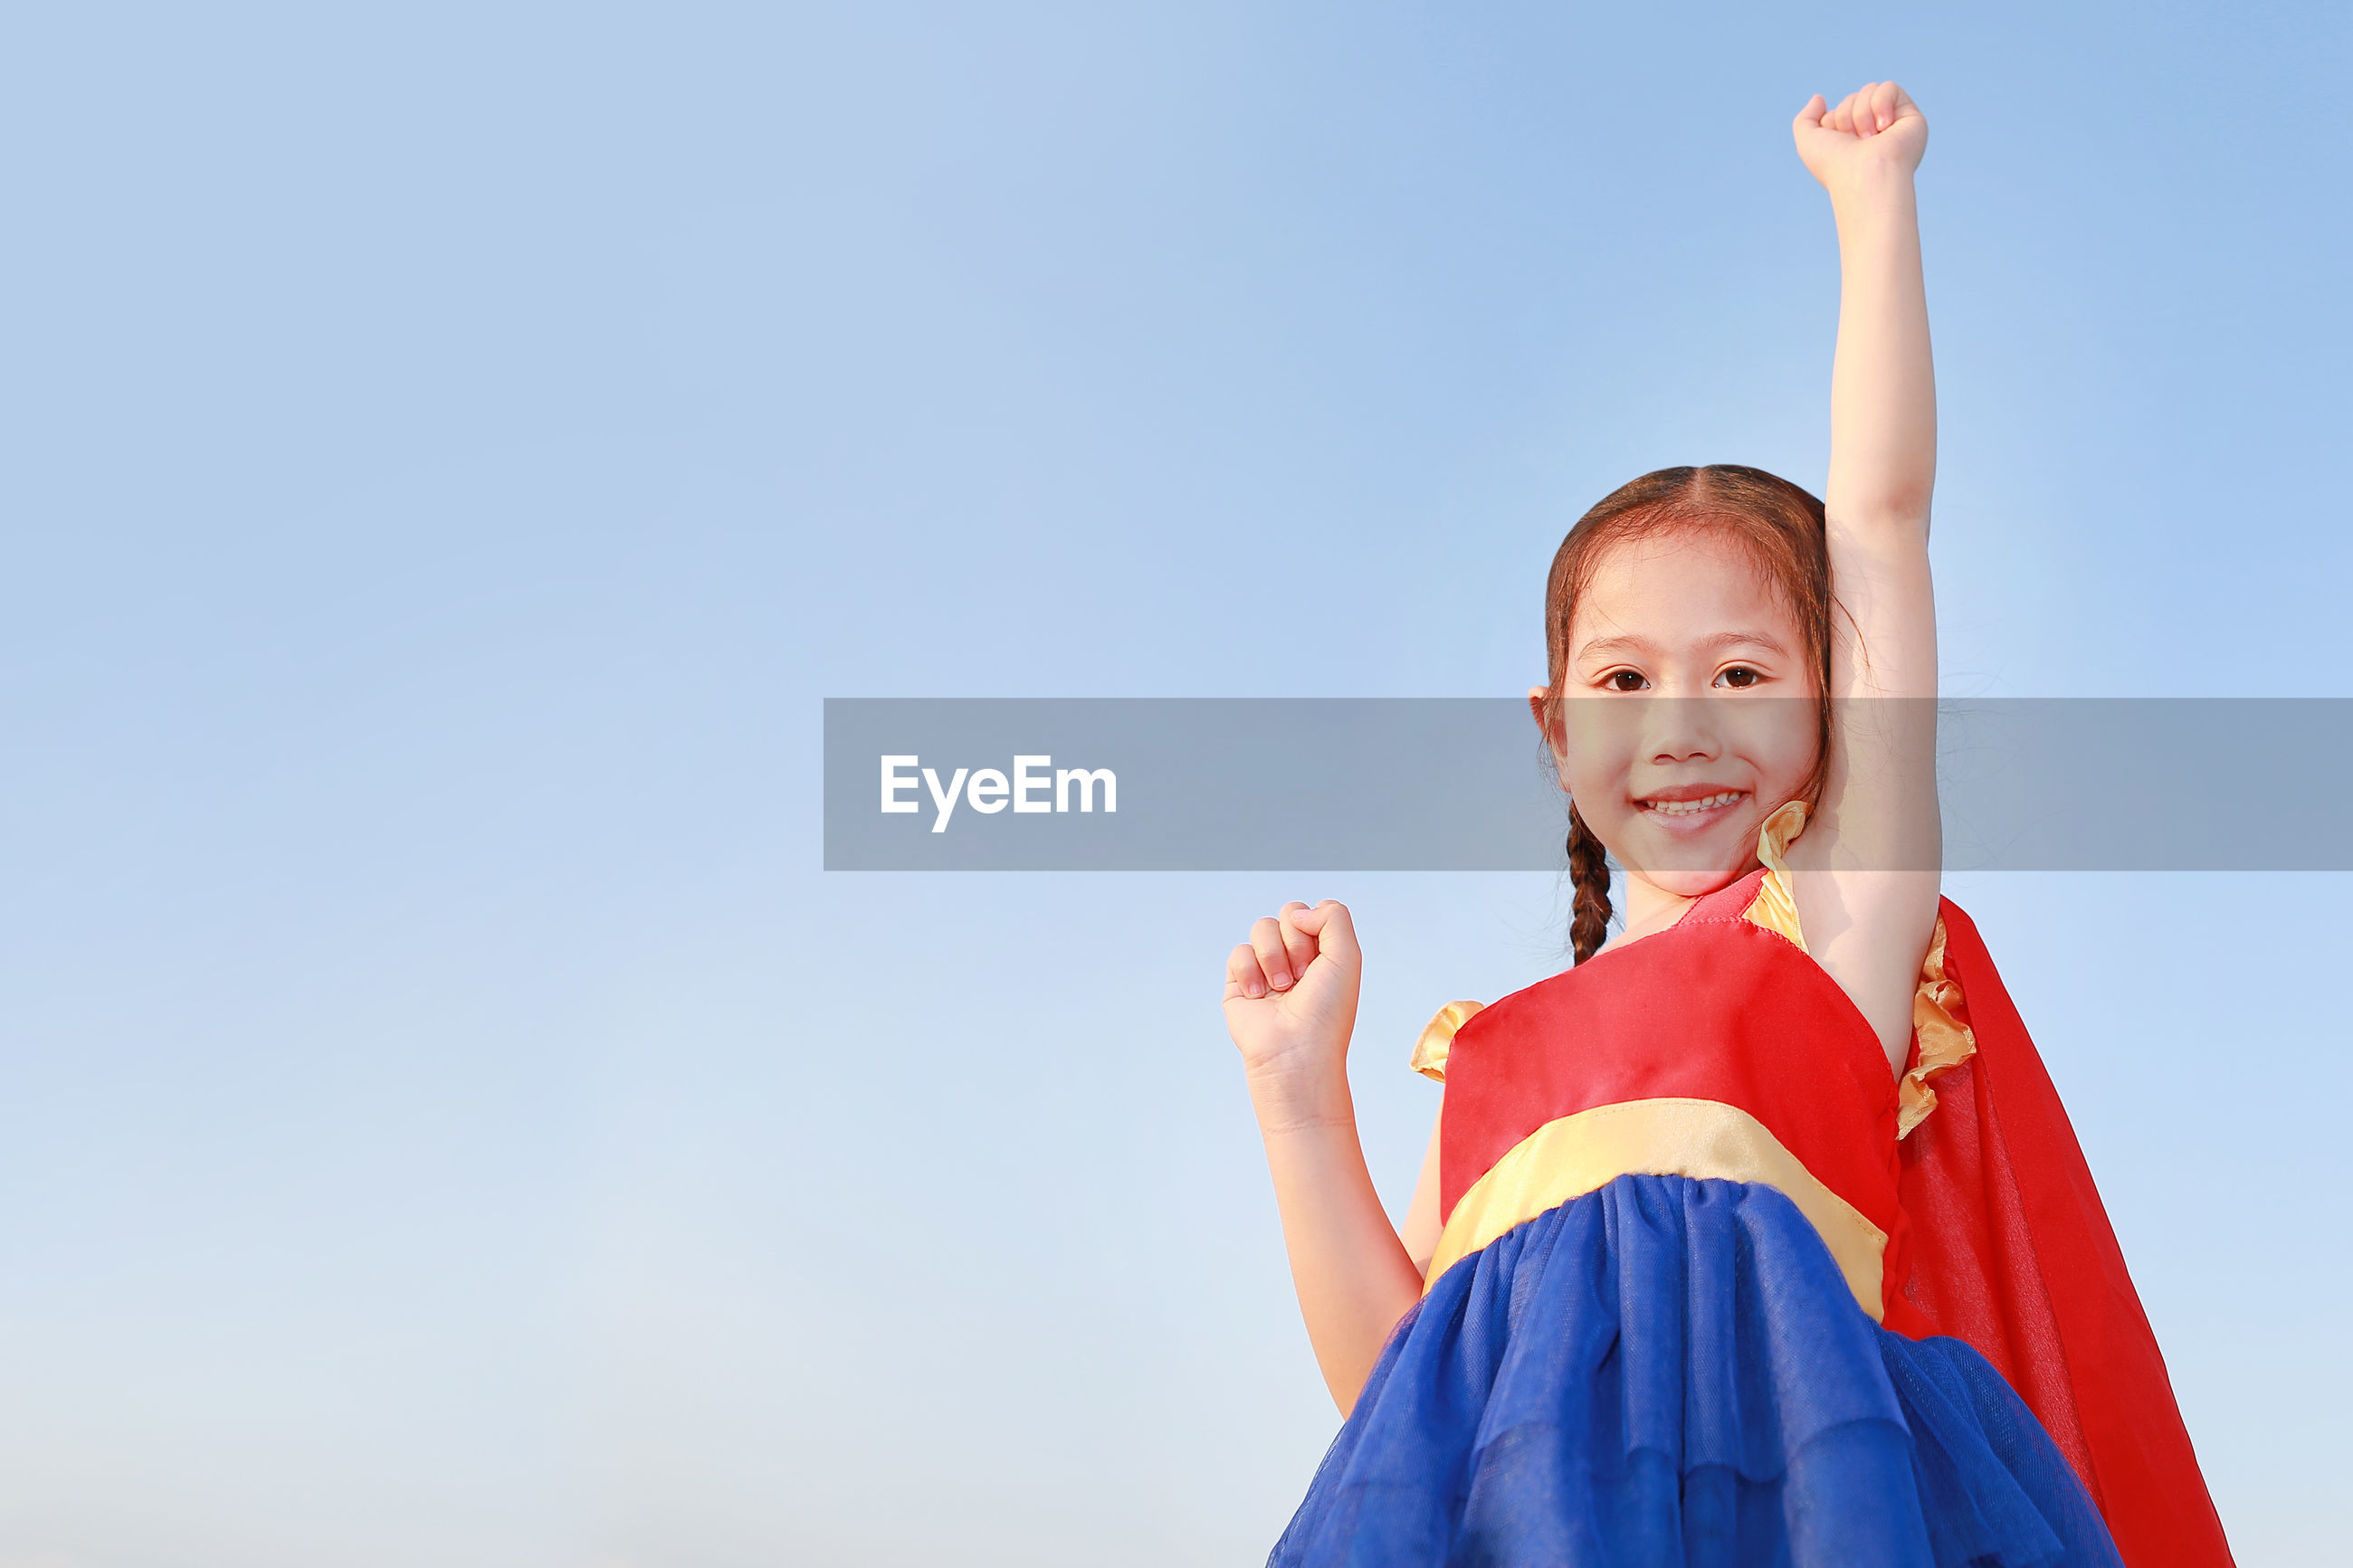 Low angle portrait of smiling girl with hand raised standing against clear blue sky